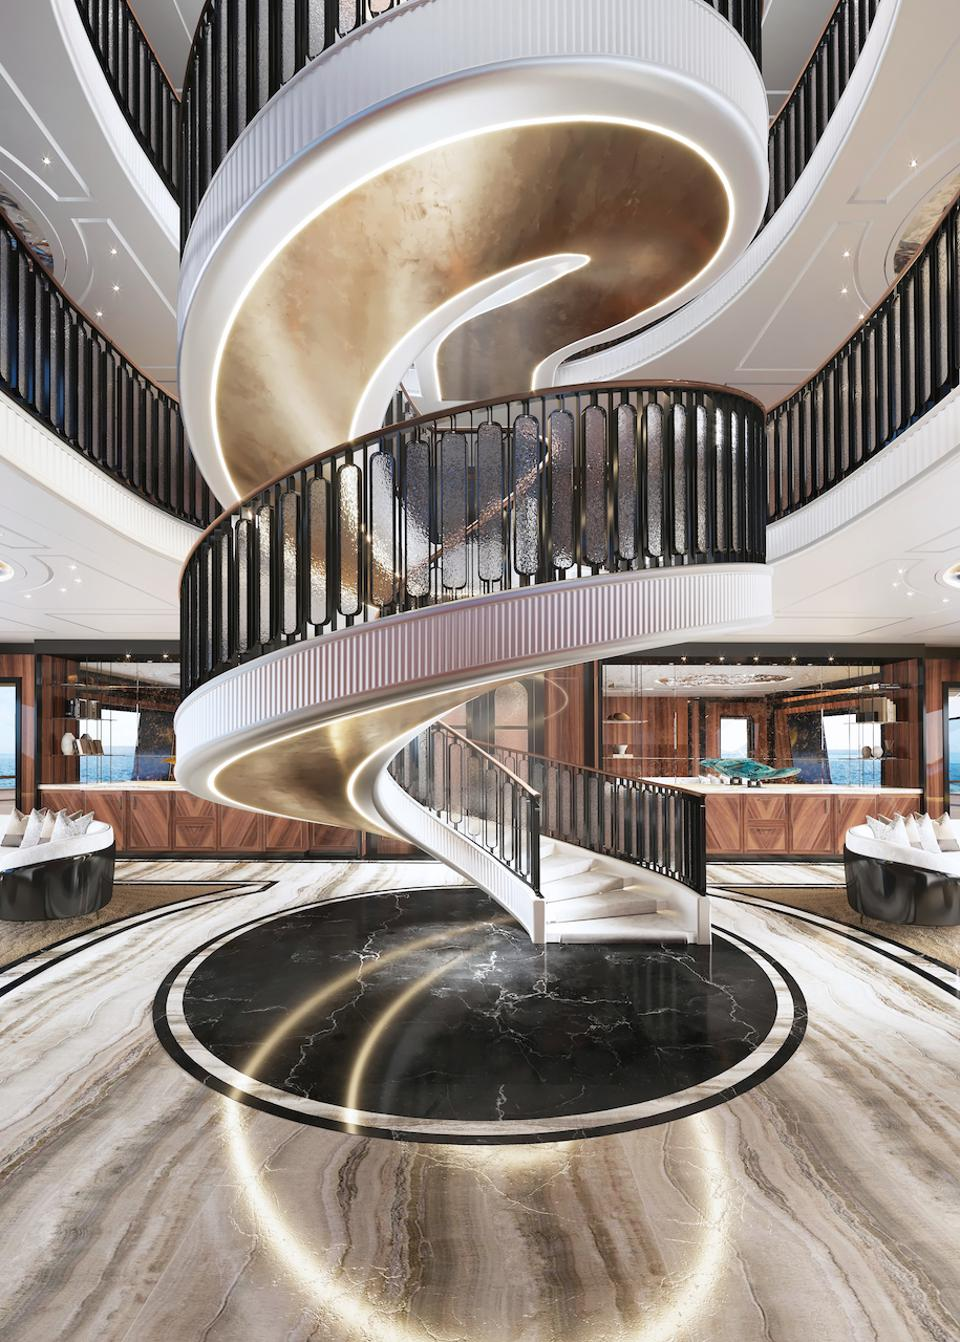 Ultra2 by T. Fotiadis Design features this amazing spiral staircase between decks